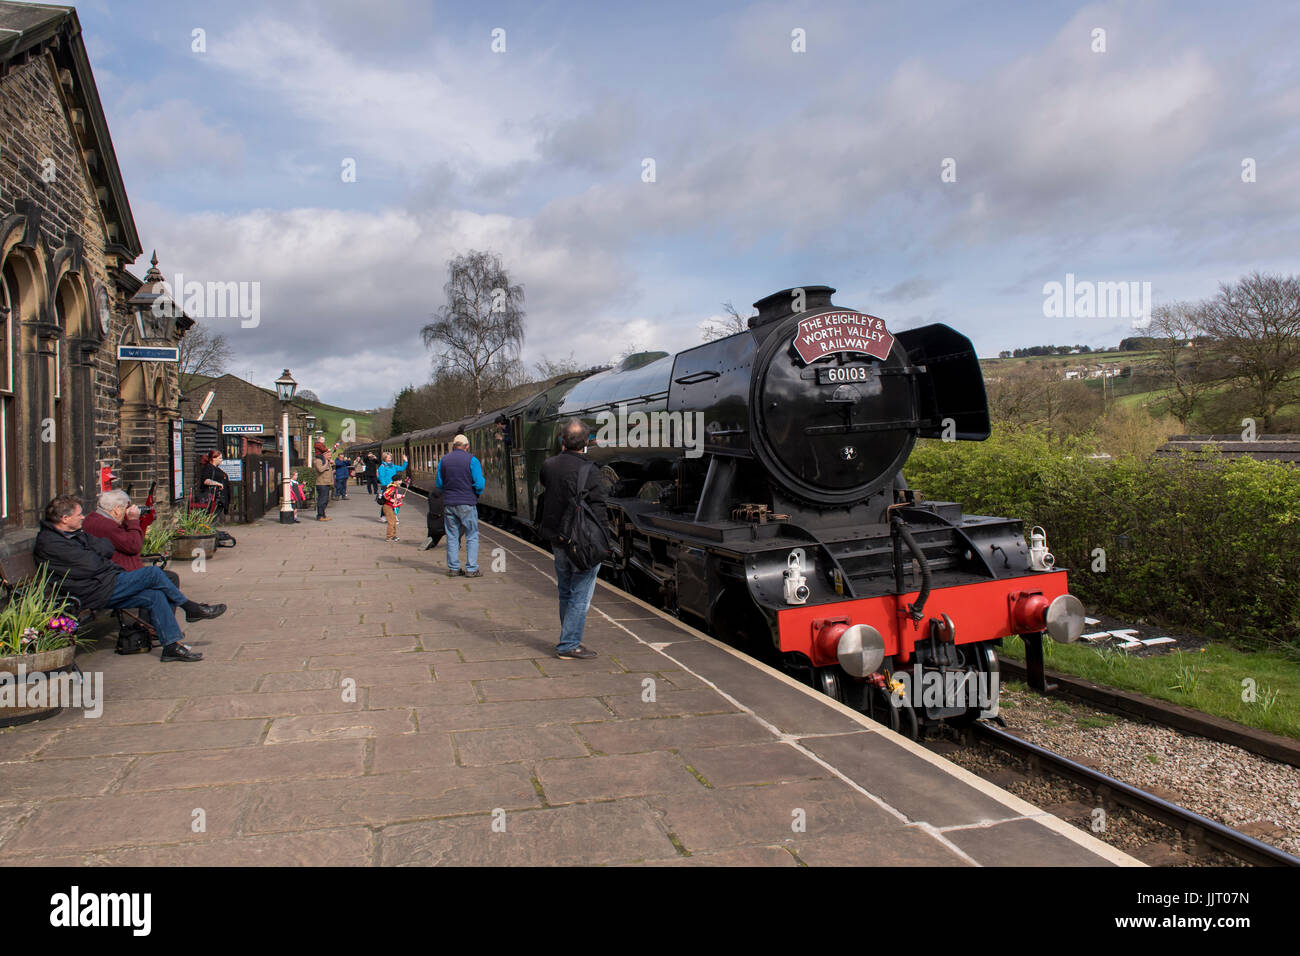 People on platform watch & wave at driver (iconic steam locomotive engine 60103 Flying Scotsman) at station - Keighley Stock Photo